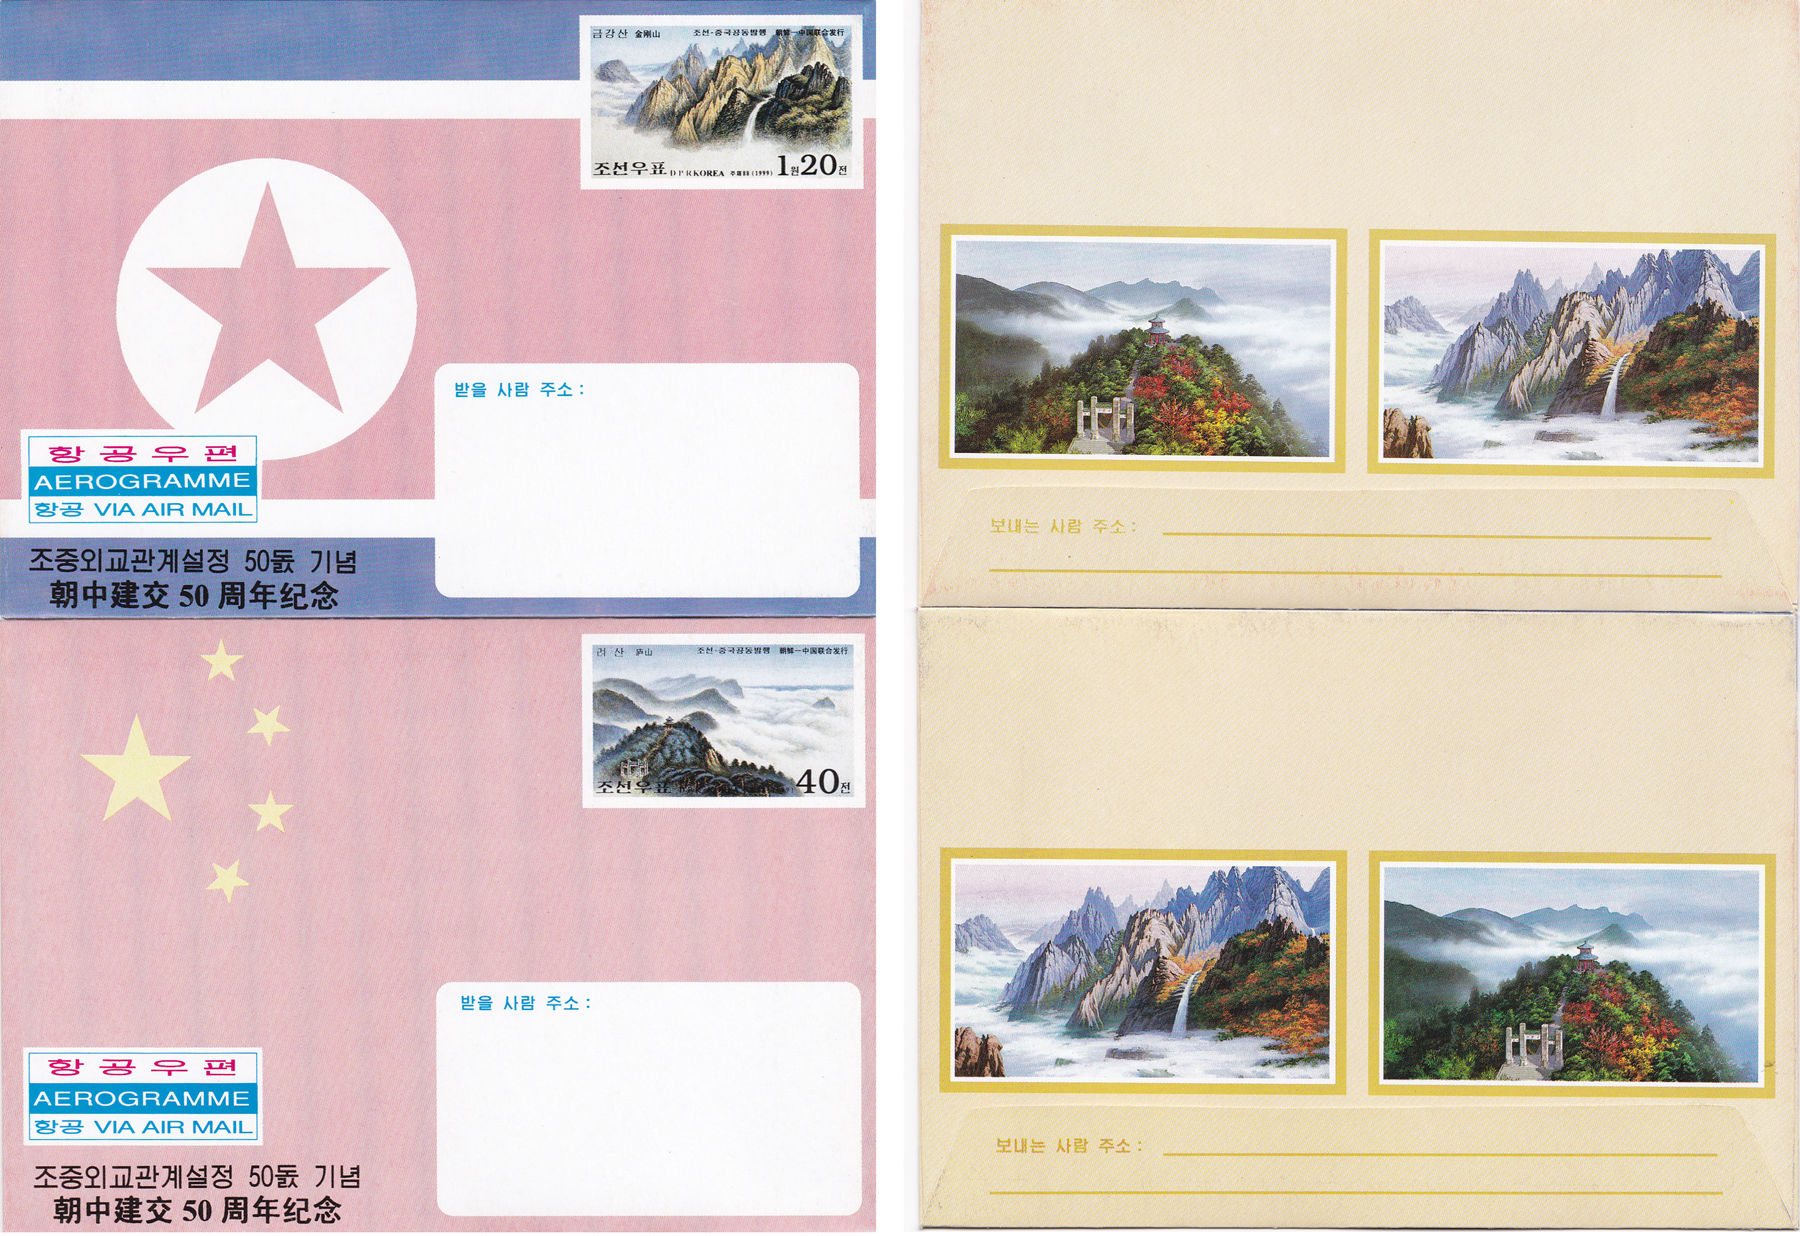 L9610, Korea-China Diplomatic Relationship 50th Anniv. Aerogramme, 2 Pcs, 1999